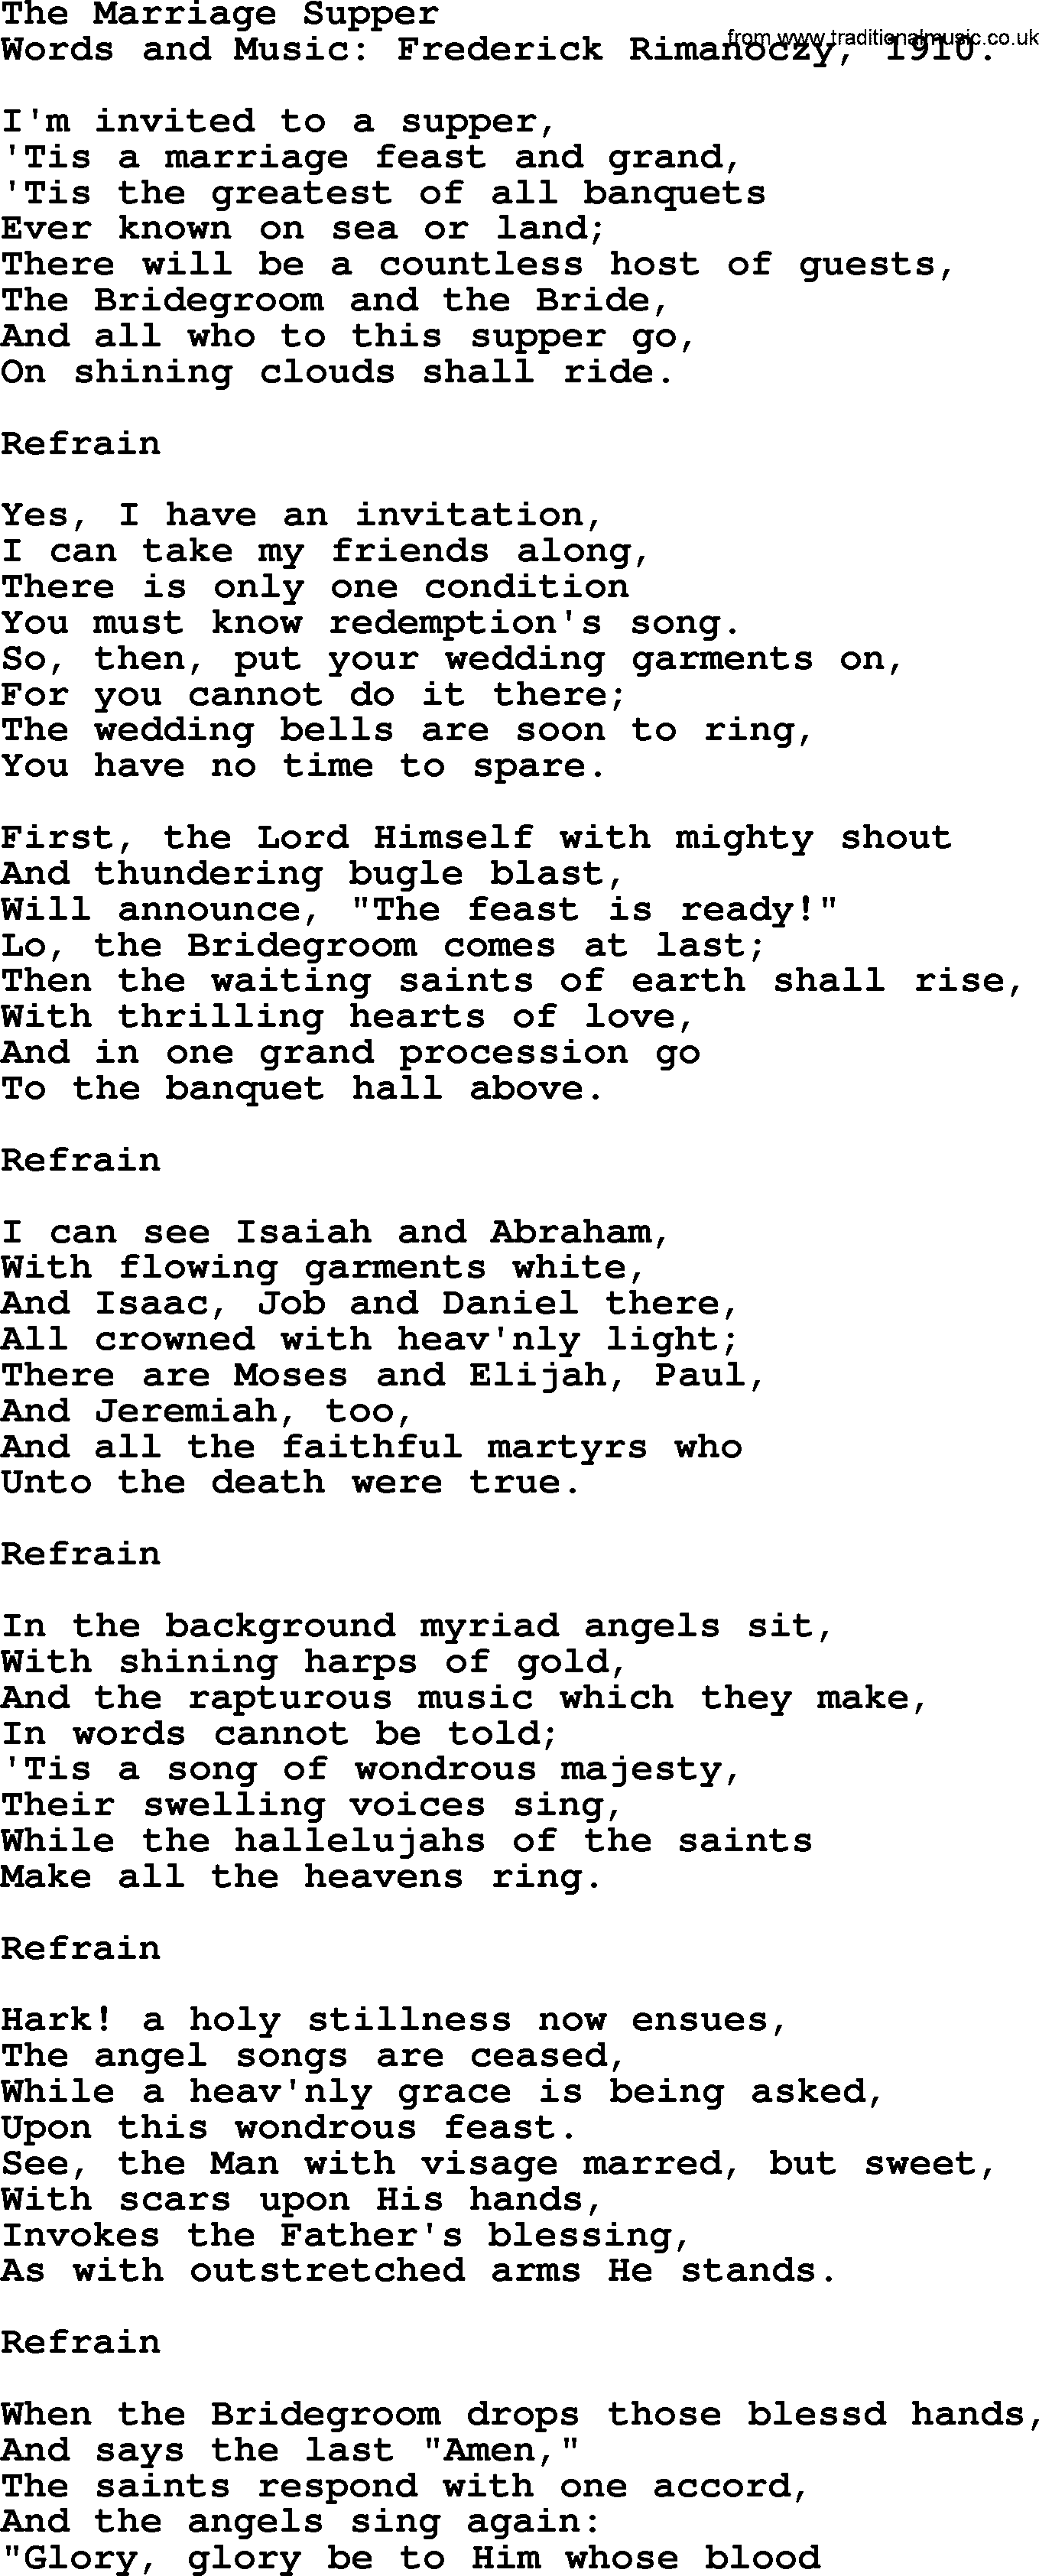 Hymns and songs about heaven the marriage supper lyrics and pdf songs and hymns about heaven the marriage supper lyrics with pdf stopboris Images